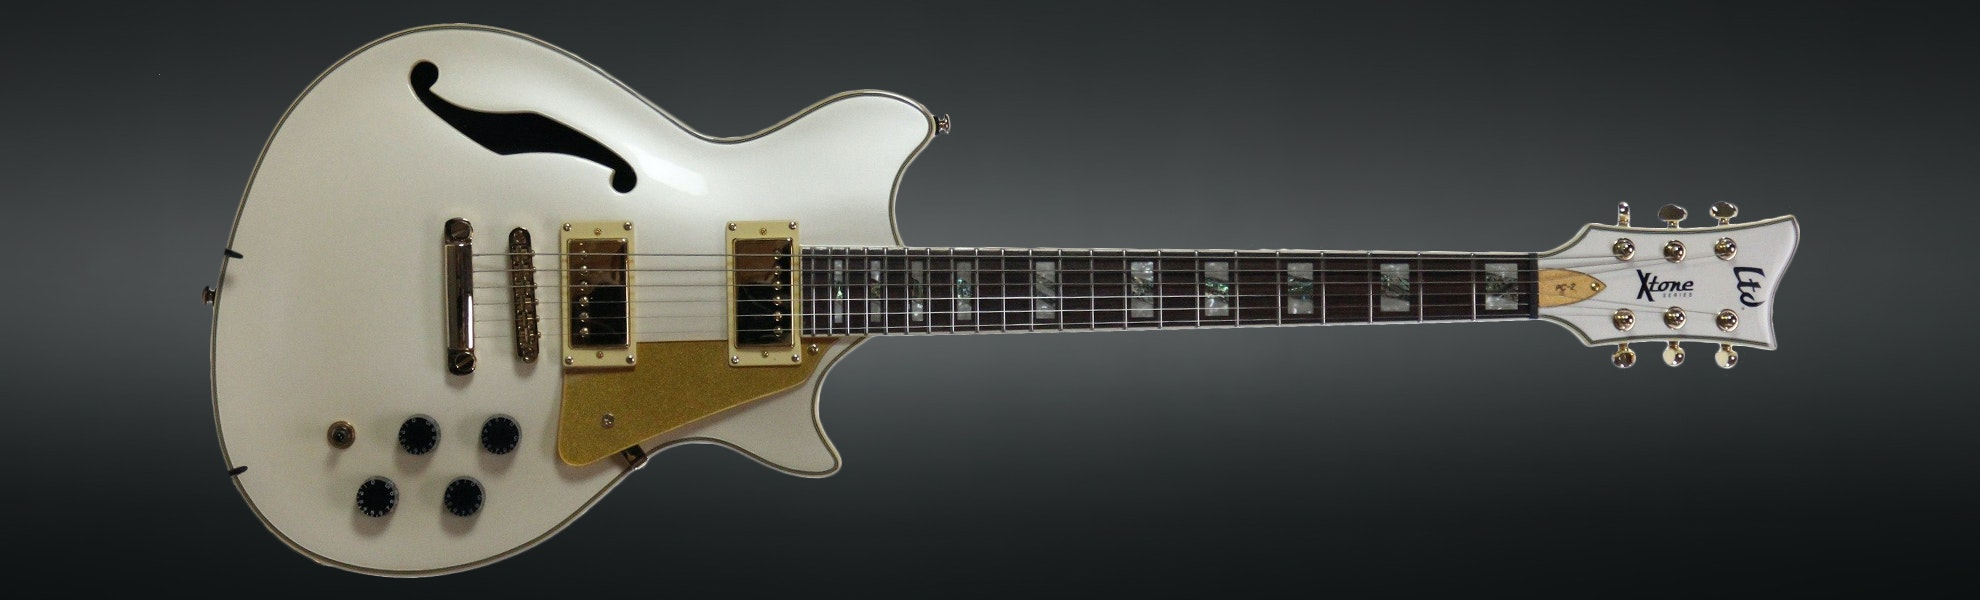 ESP B-Stock Guitars LTD Xtone PC-2